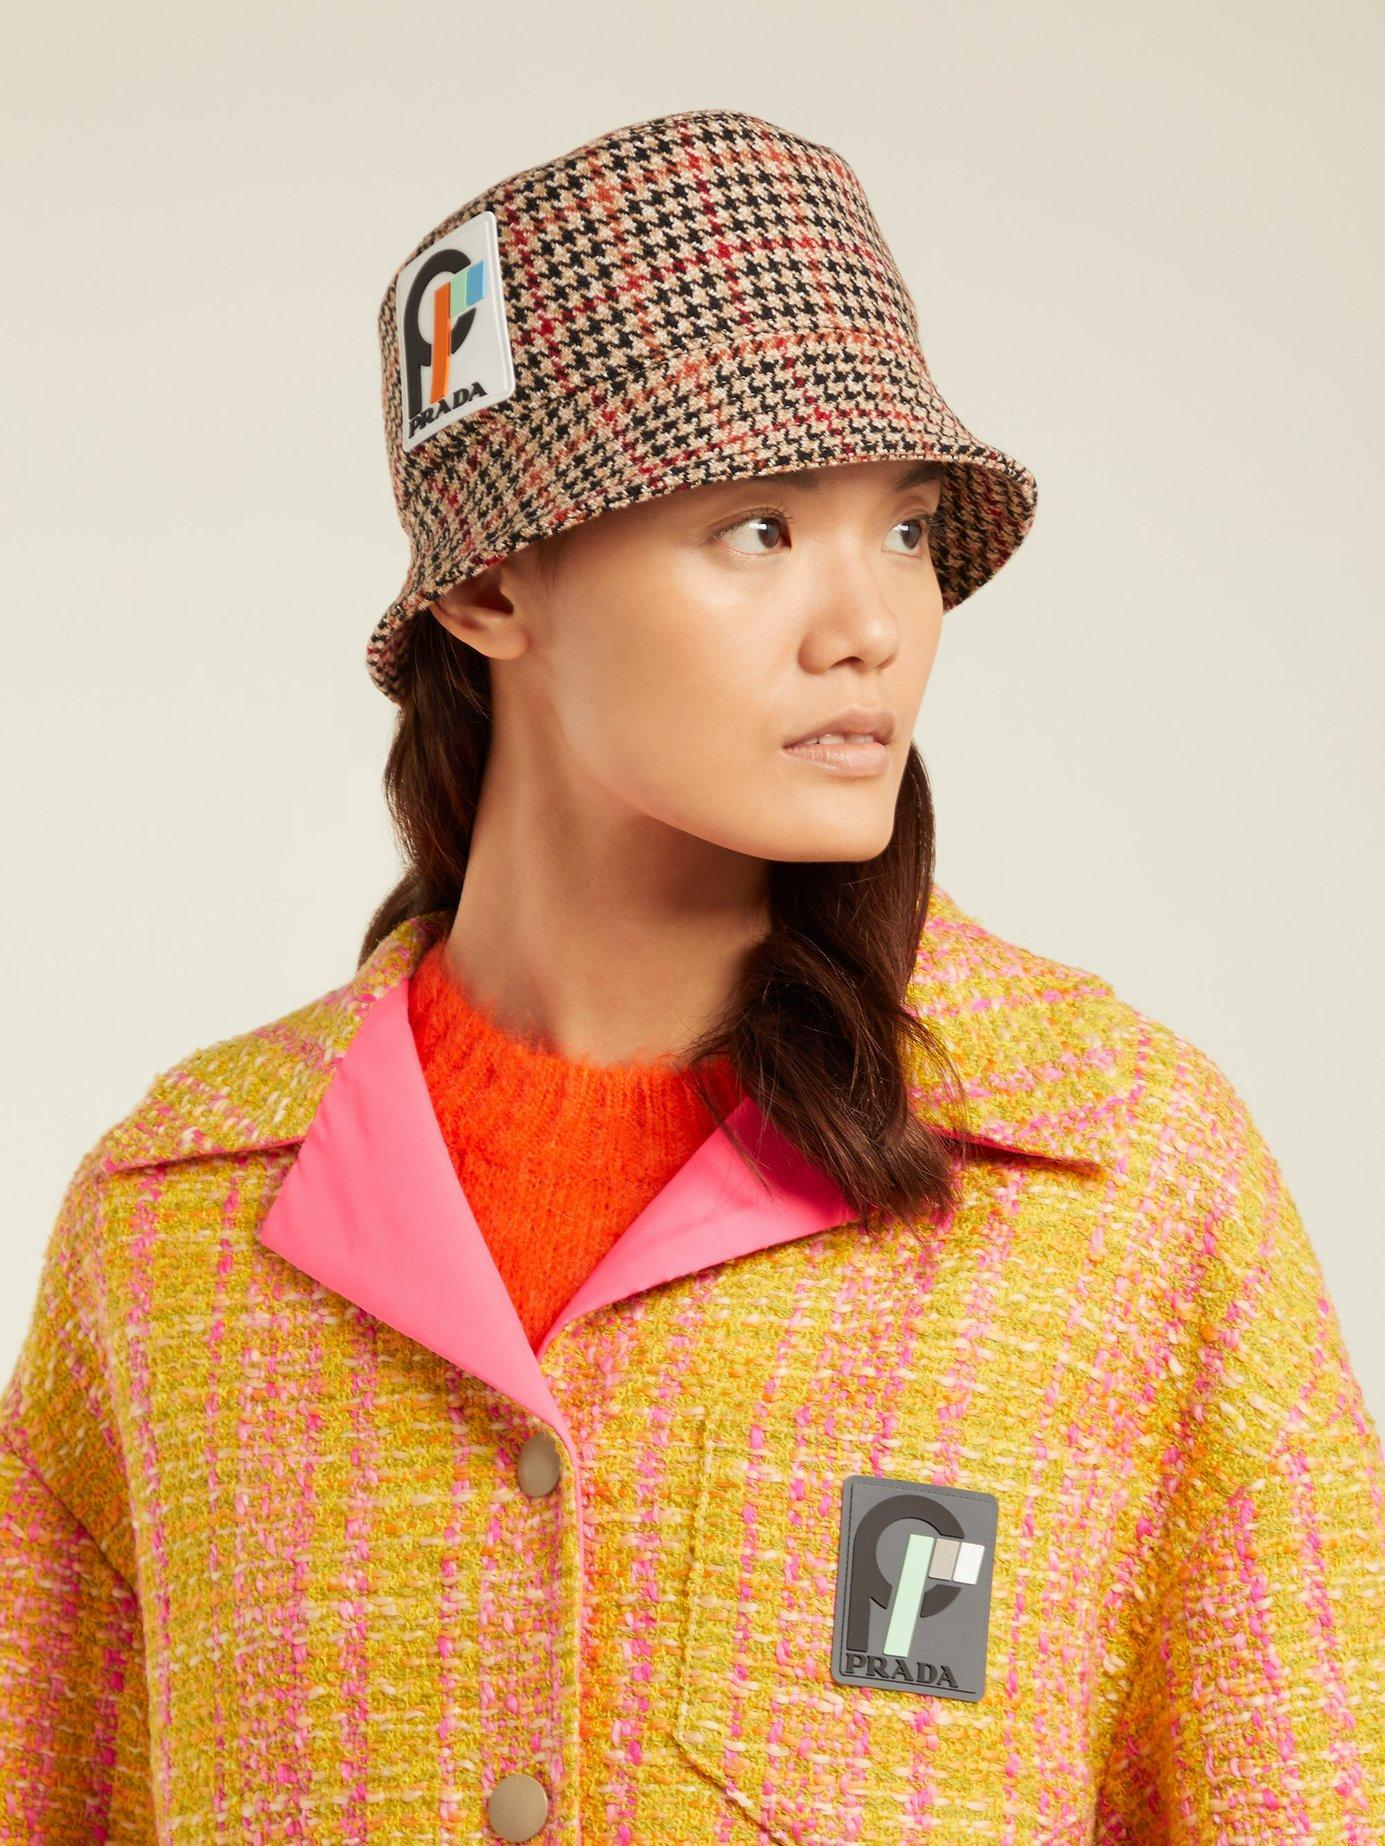 d3cd30a01aa Prada - Multicolor Houndstooth Wool Tweed Bucket Hat - Lyst. View fullscreen